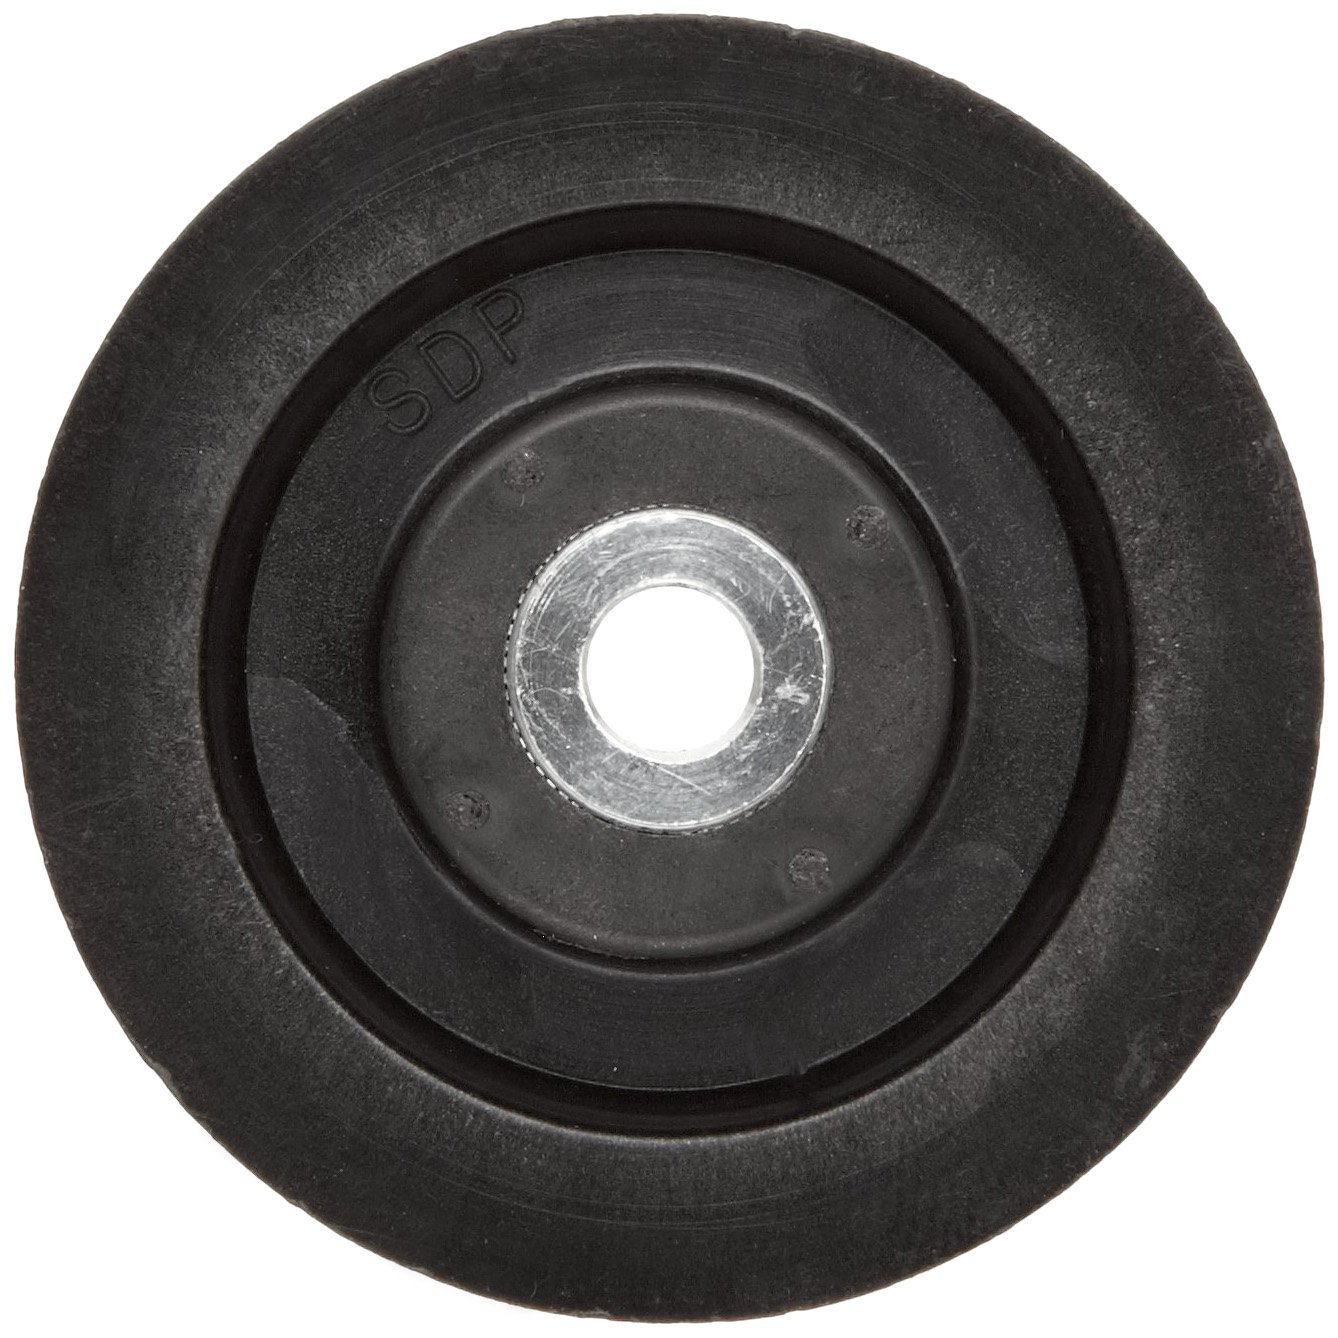 28 Groves Boston Gear PLB5028SF095//16 Timing Pulley for 9mm Wide Belts 0.813 Overall Length 1.709 Outside Diameter 0.313 Bore Diameter Lexan